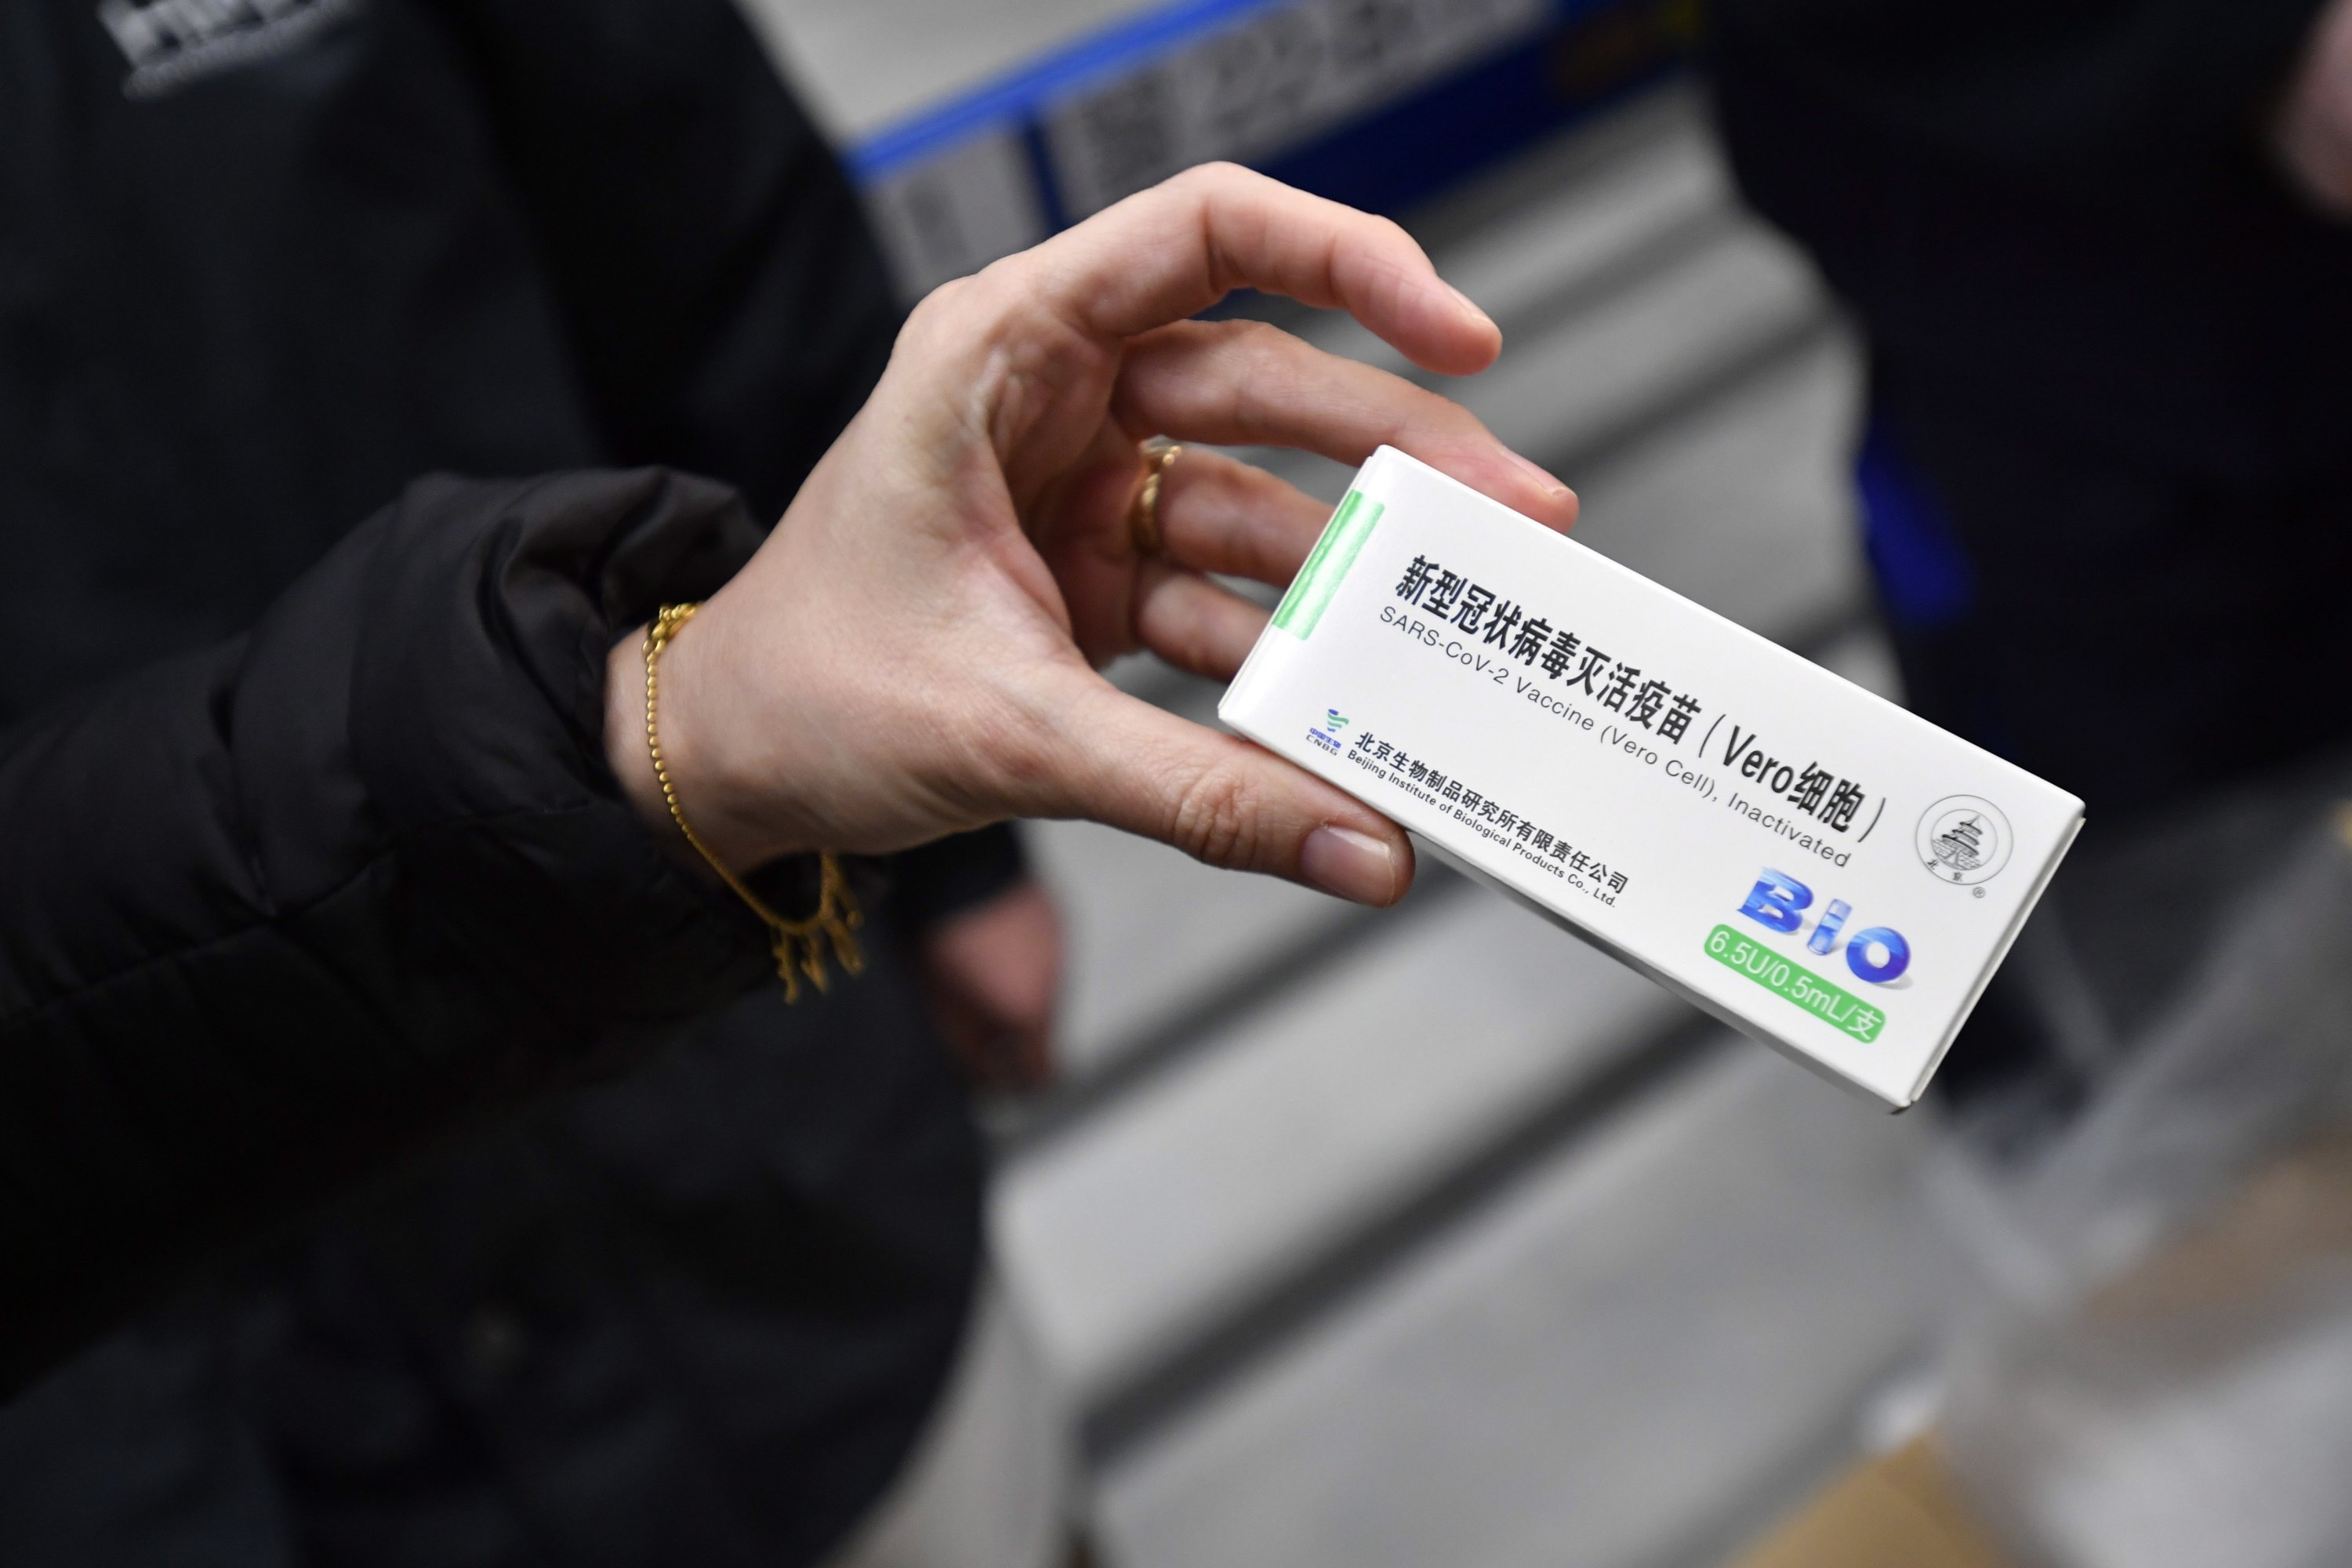 A packet containing vials of the vaccine against COVID-19 produced by China' Sinopharm is displayed in the logistics center of Hungarian pharmaceutical wholesaler Hungaropharma in Budapest, Hungary, 16 Feb. 16, 2021 (EPA Photo)